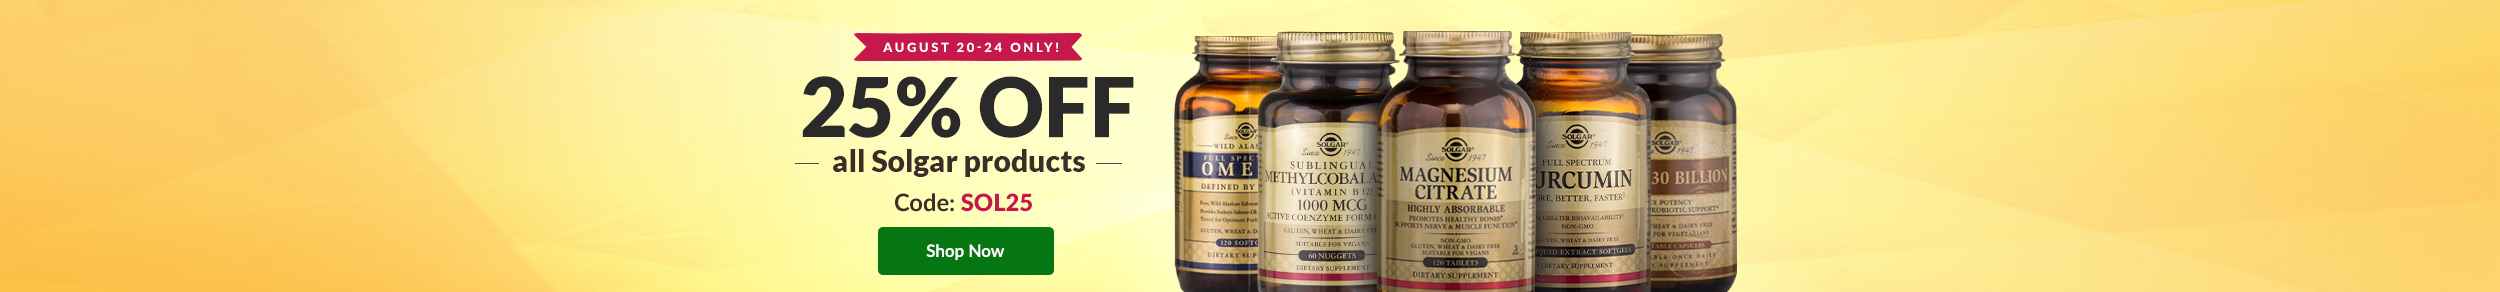 August 20-24 Only: 25% OFF all Solgar products. Code SOL25. SHOP NOW!